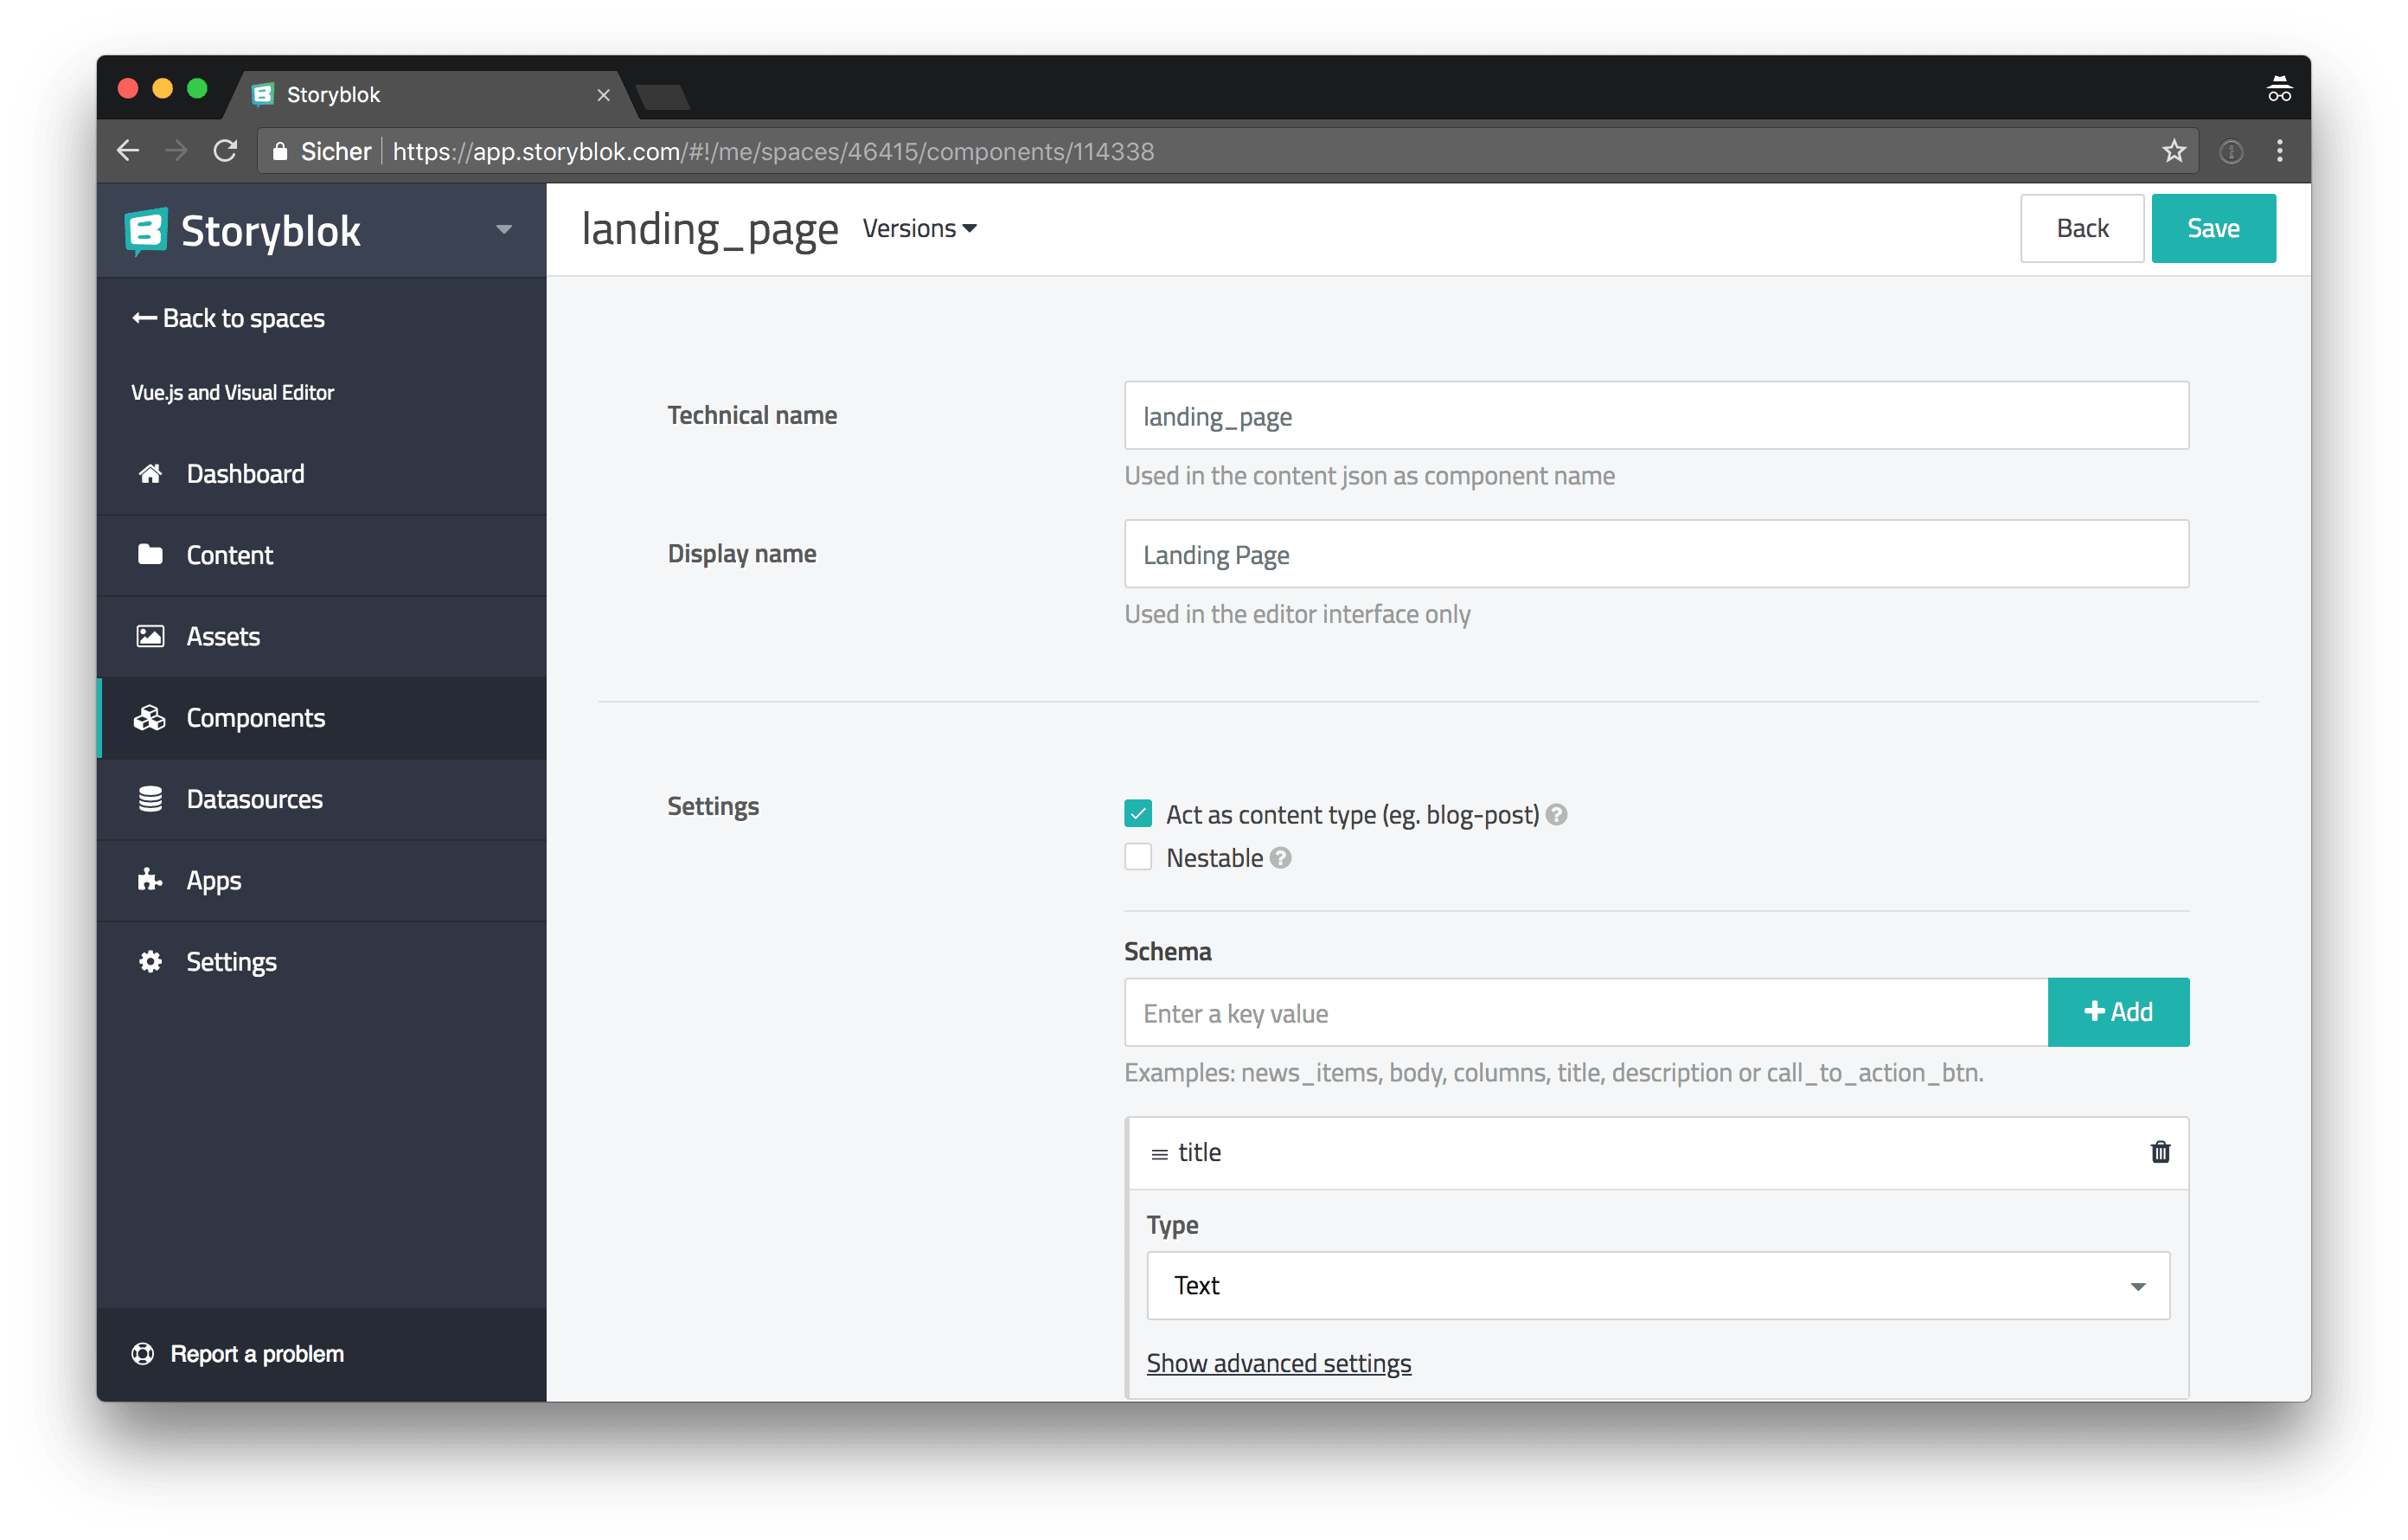 Building a Website with Vue js, the Storyblok Visual Editor and